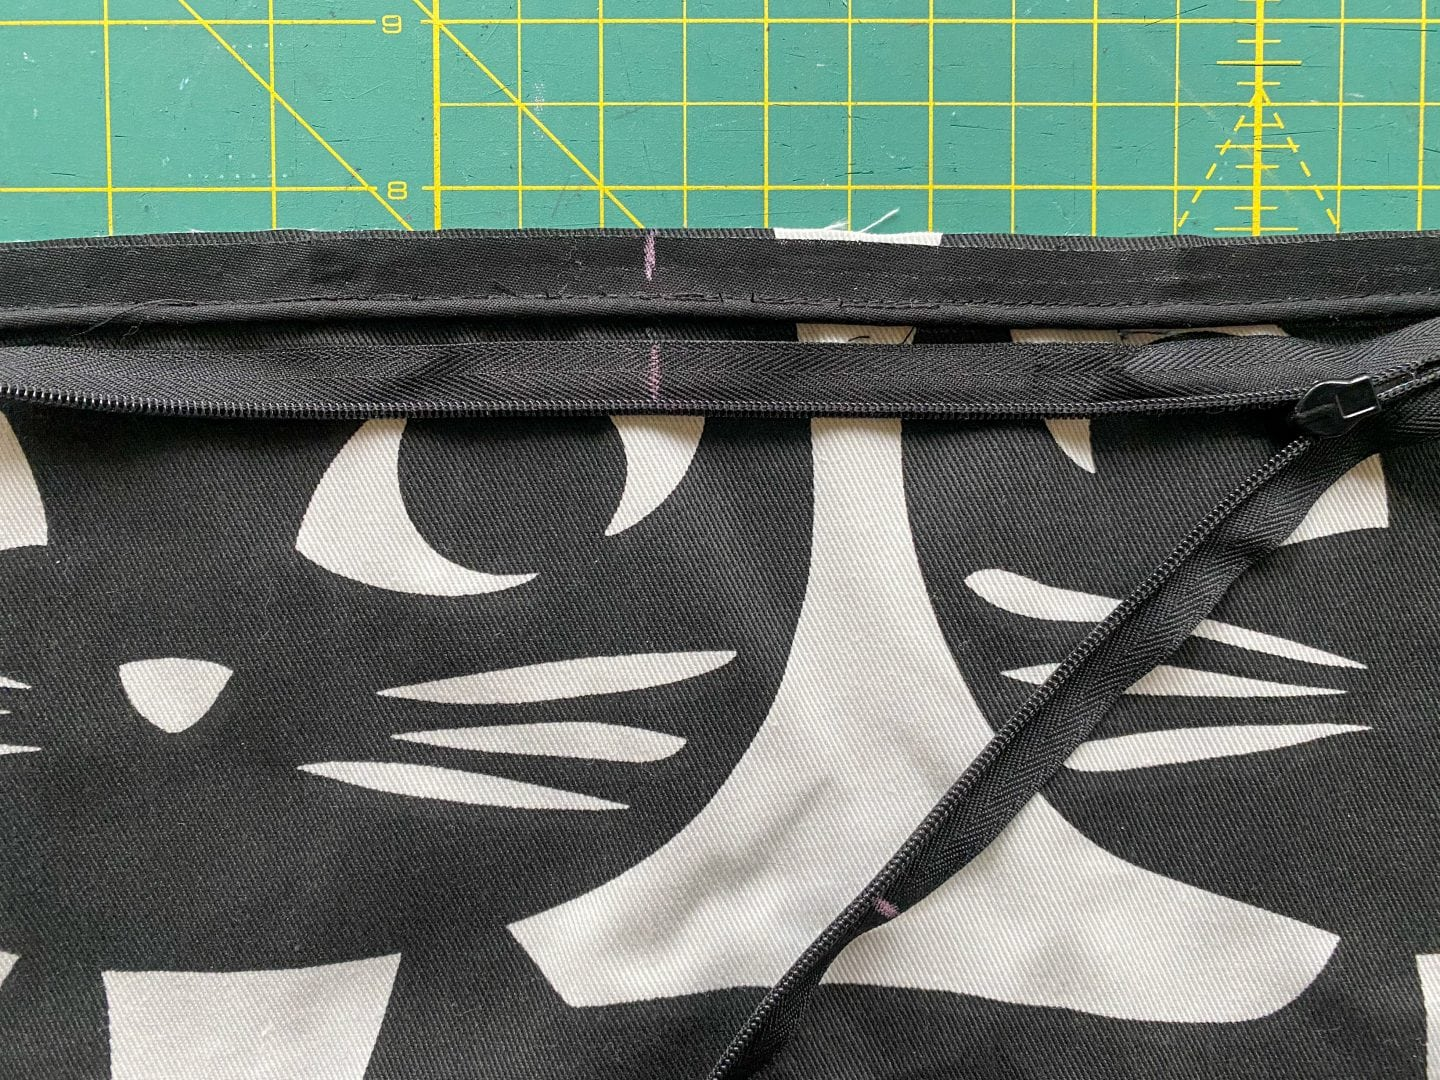 Image of one side of the pillow with a mark to identify the middle of the side and a black zipper with a mark to identify the middle of the zipper